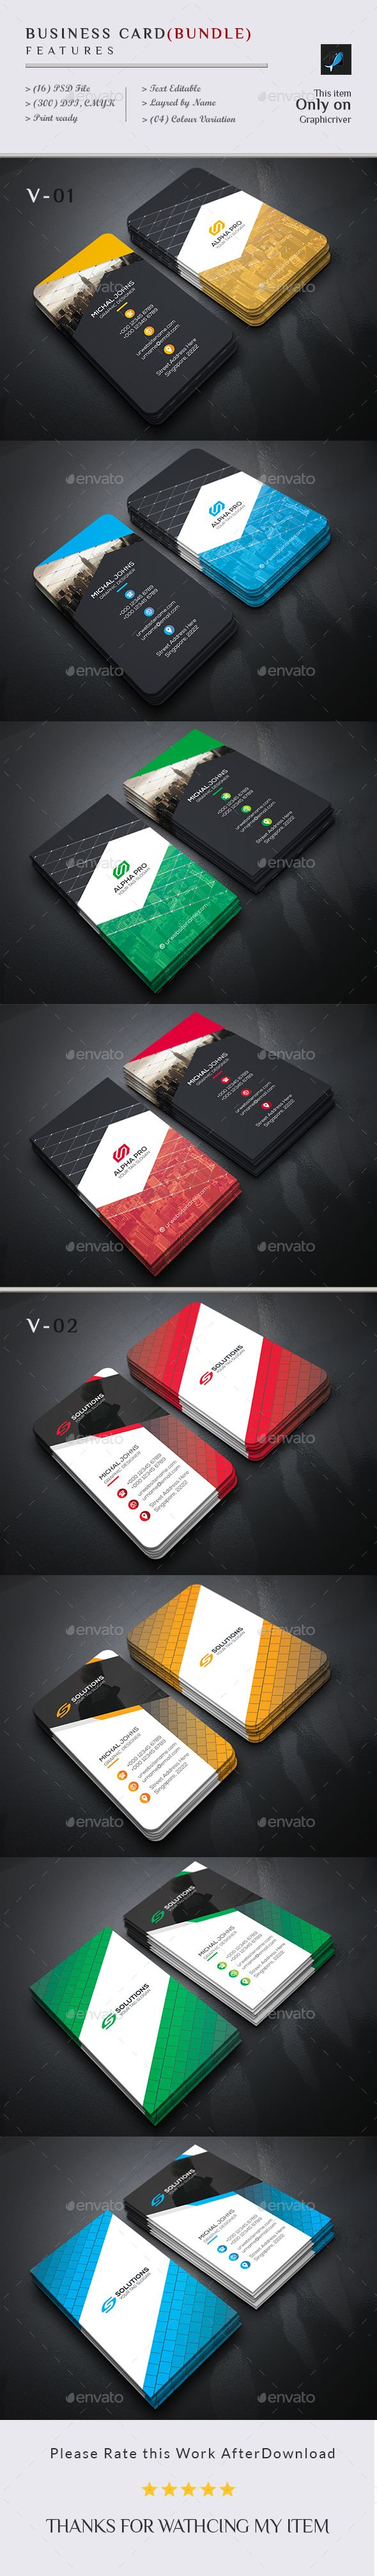 Business Card Template PSD Bundle 2 in 1